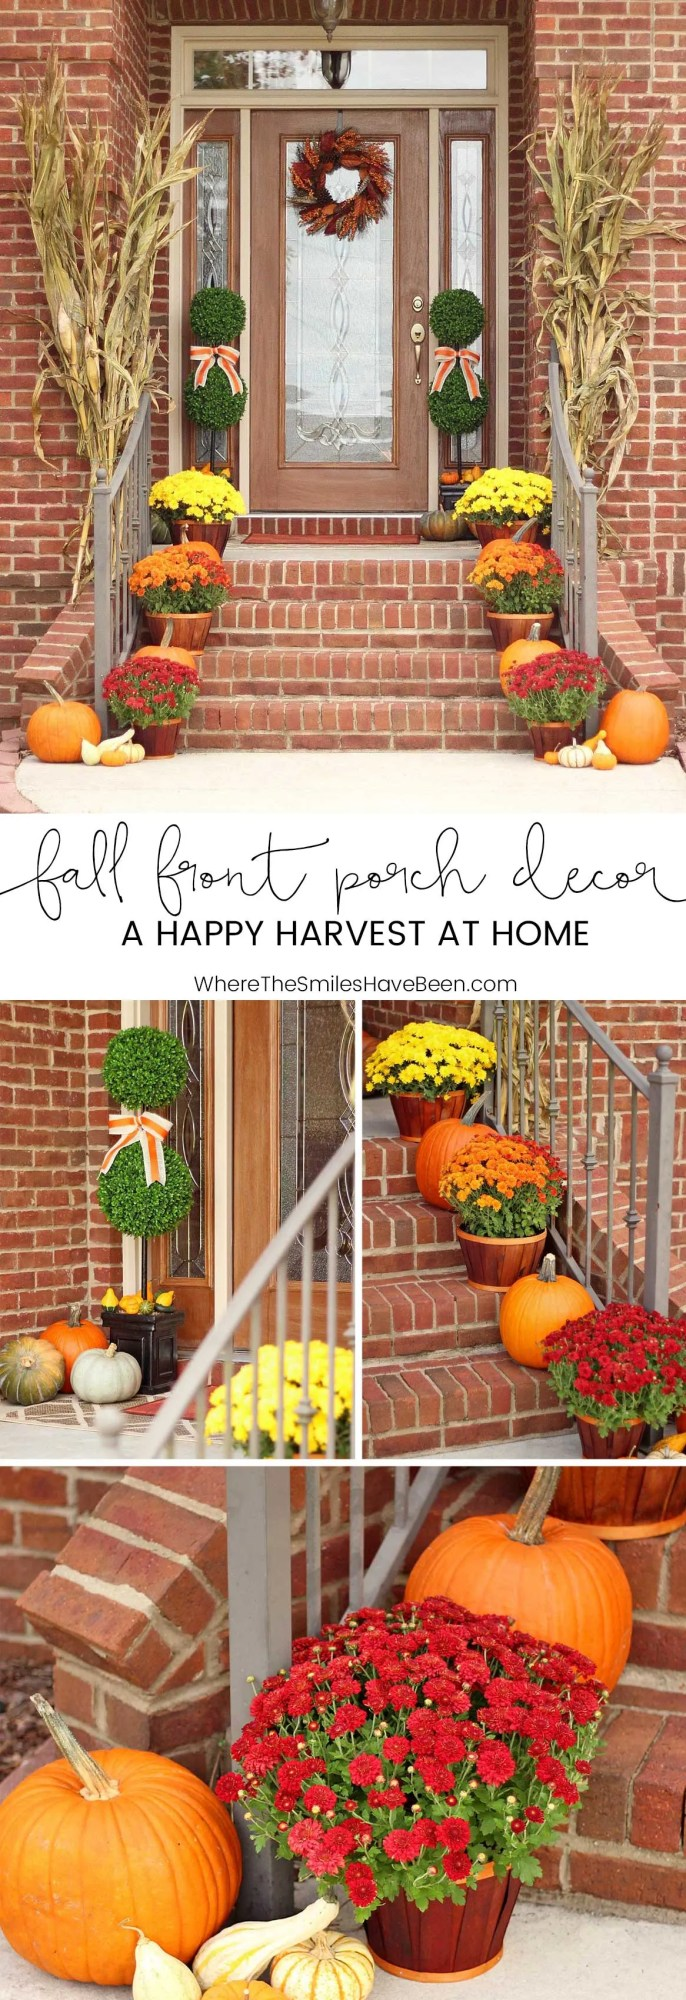 Fall Front Porch Decor: Our Happy Harvest at Home!   Where The Smiles Have Been #fall #porch #pumpkins